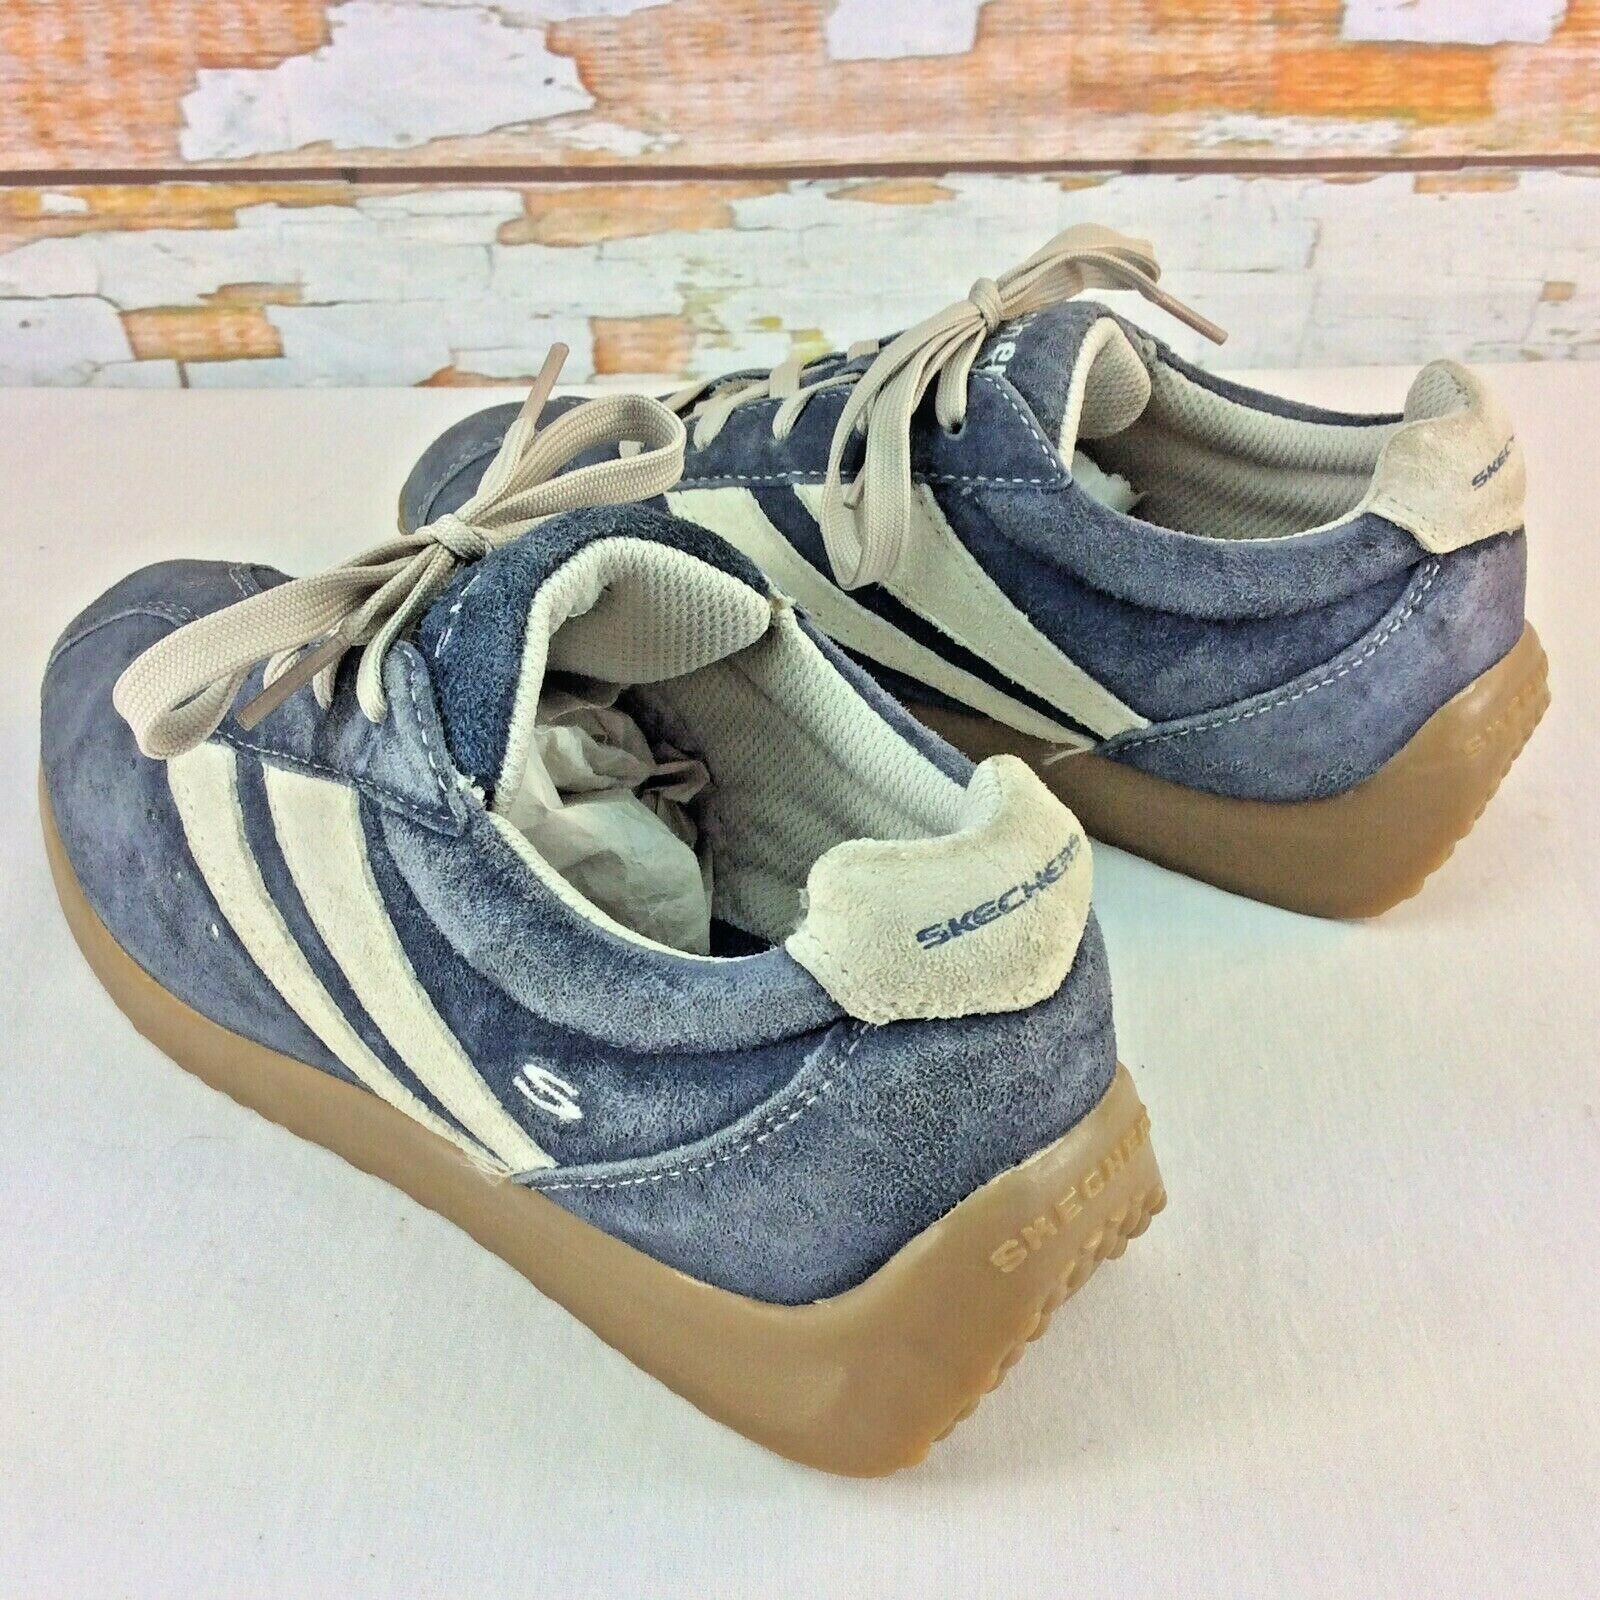 SKECHERS Womens Sneakers 7.5 M Retro Series Blue Suede Scooter Cafe Racer Shoes